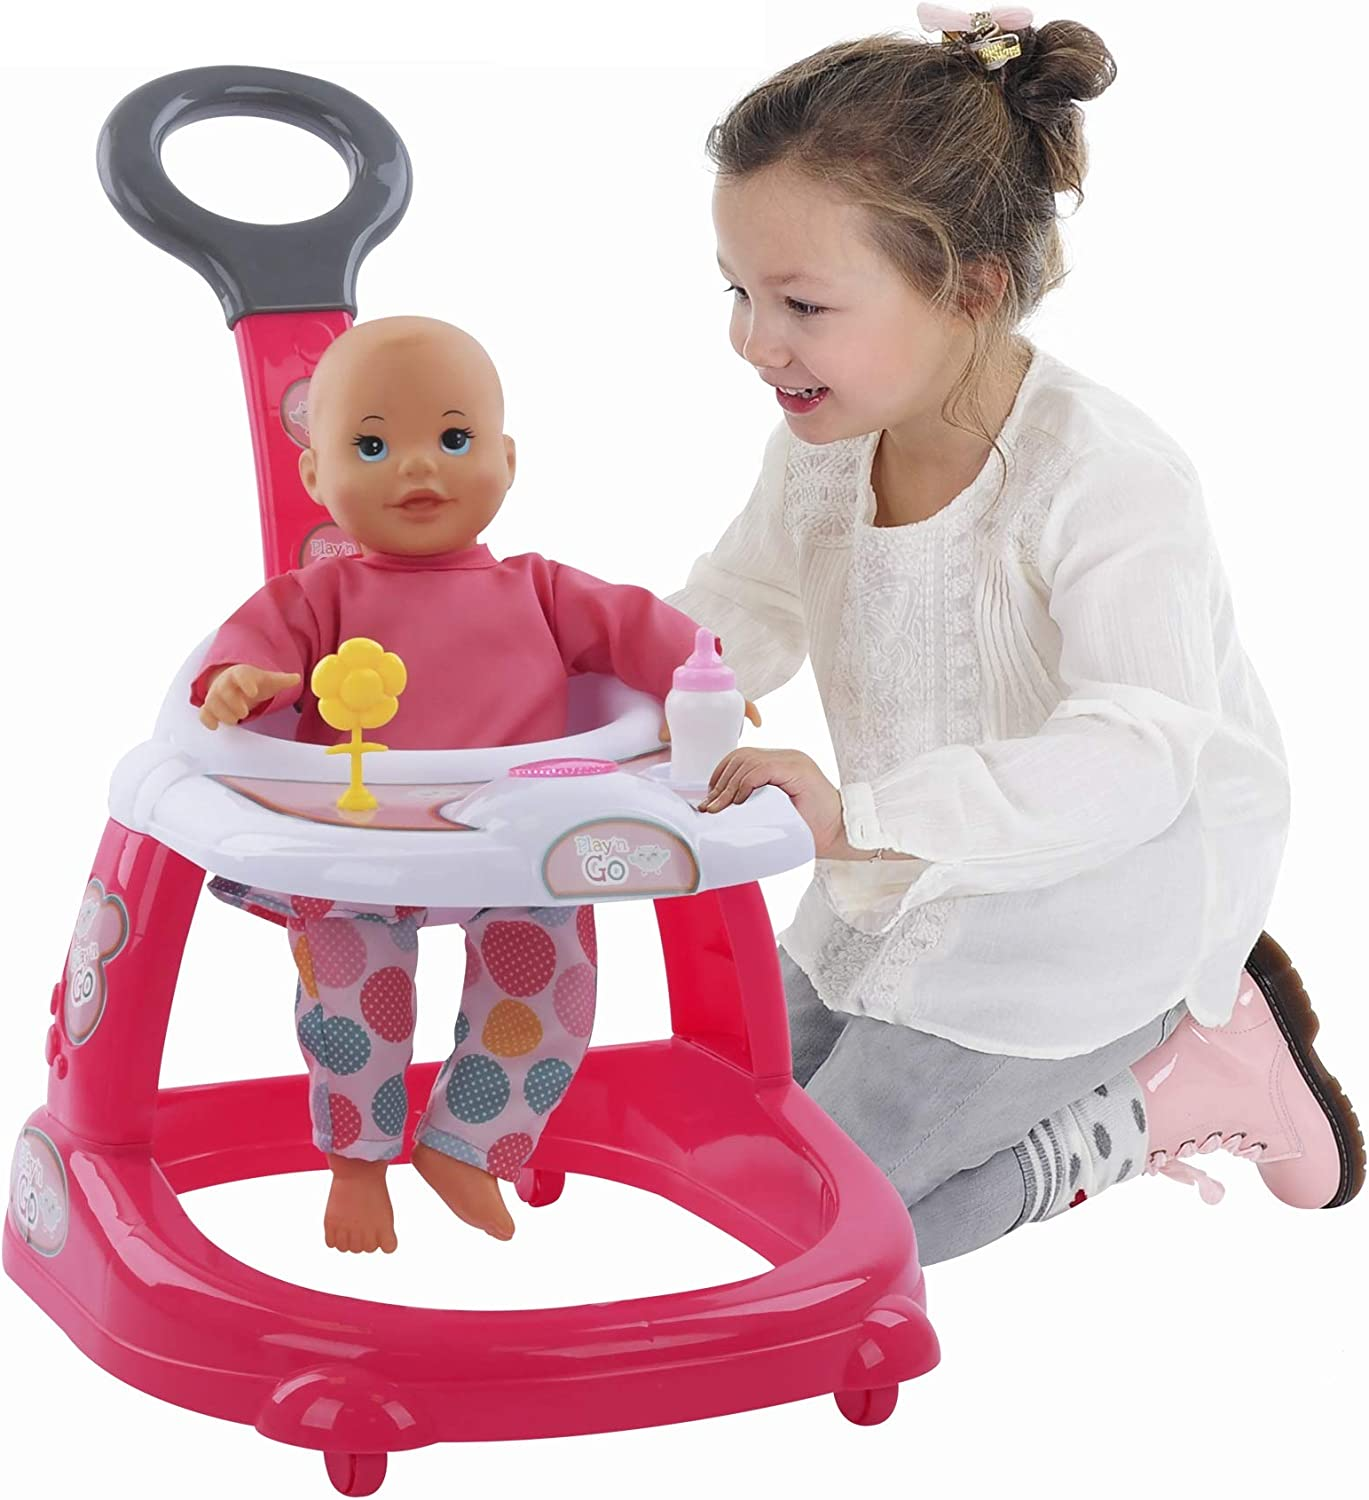 Hauck 14 inch Baby Doll and Mobile Walker with Lights and Sound Plus Baby Bottle